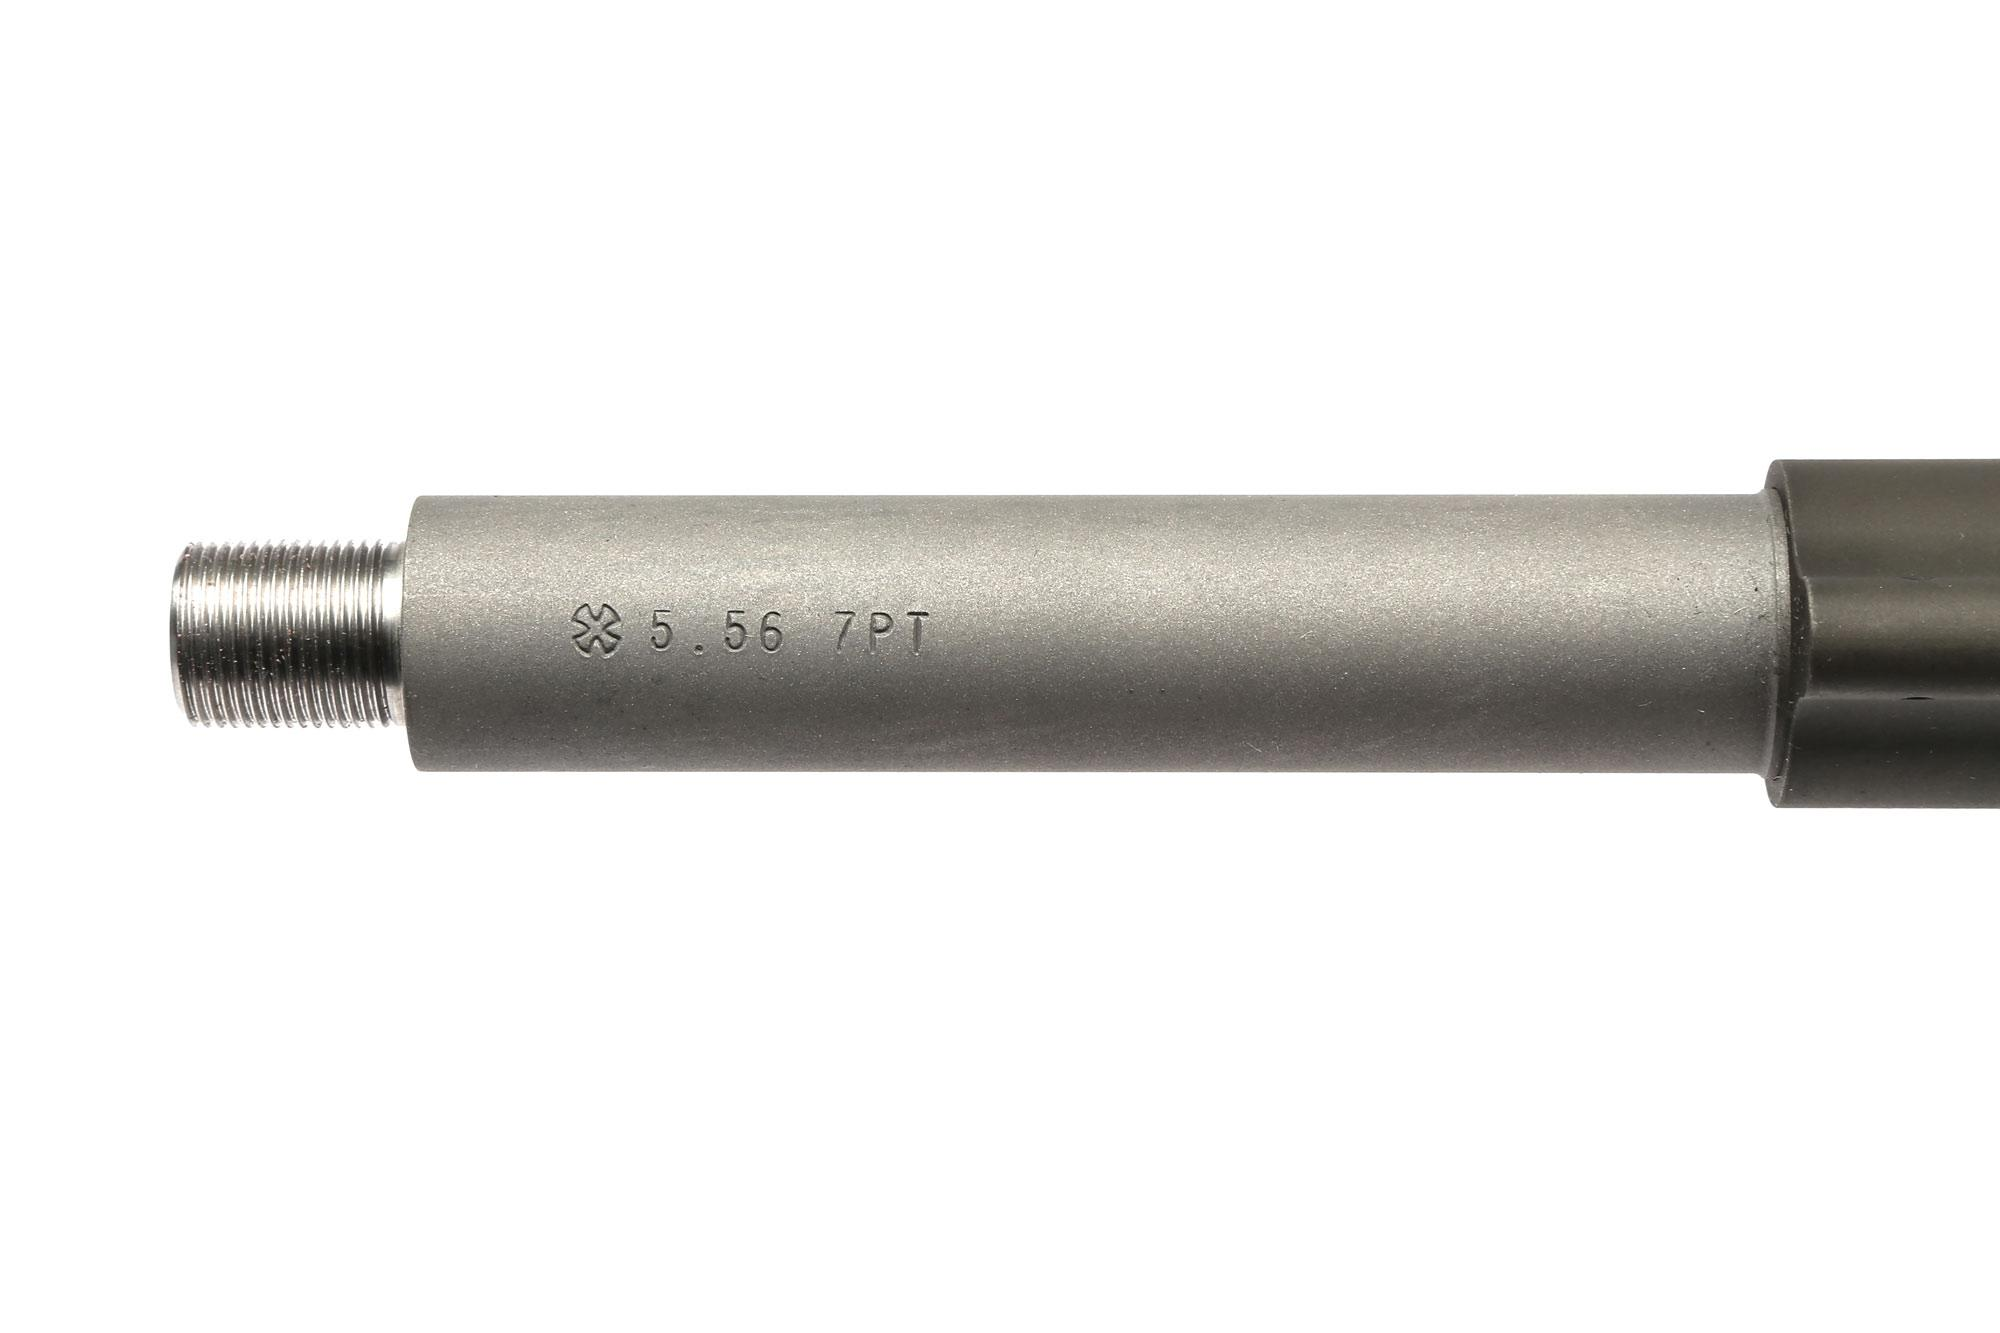 Noveske 14.5 Afghan 5.56mm Stainless Barrel